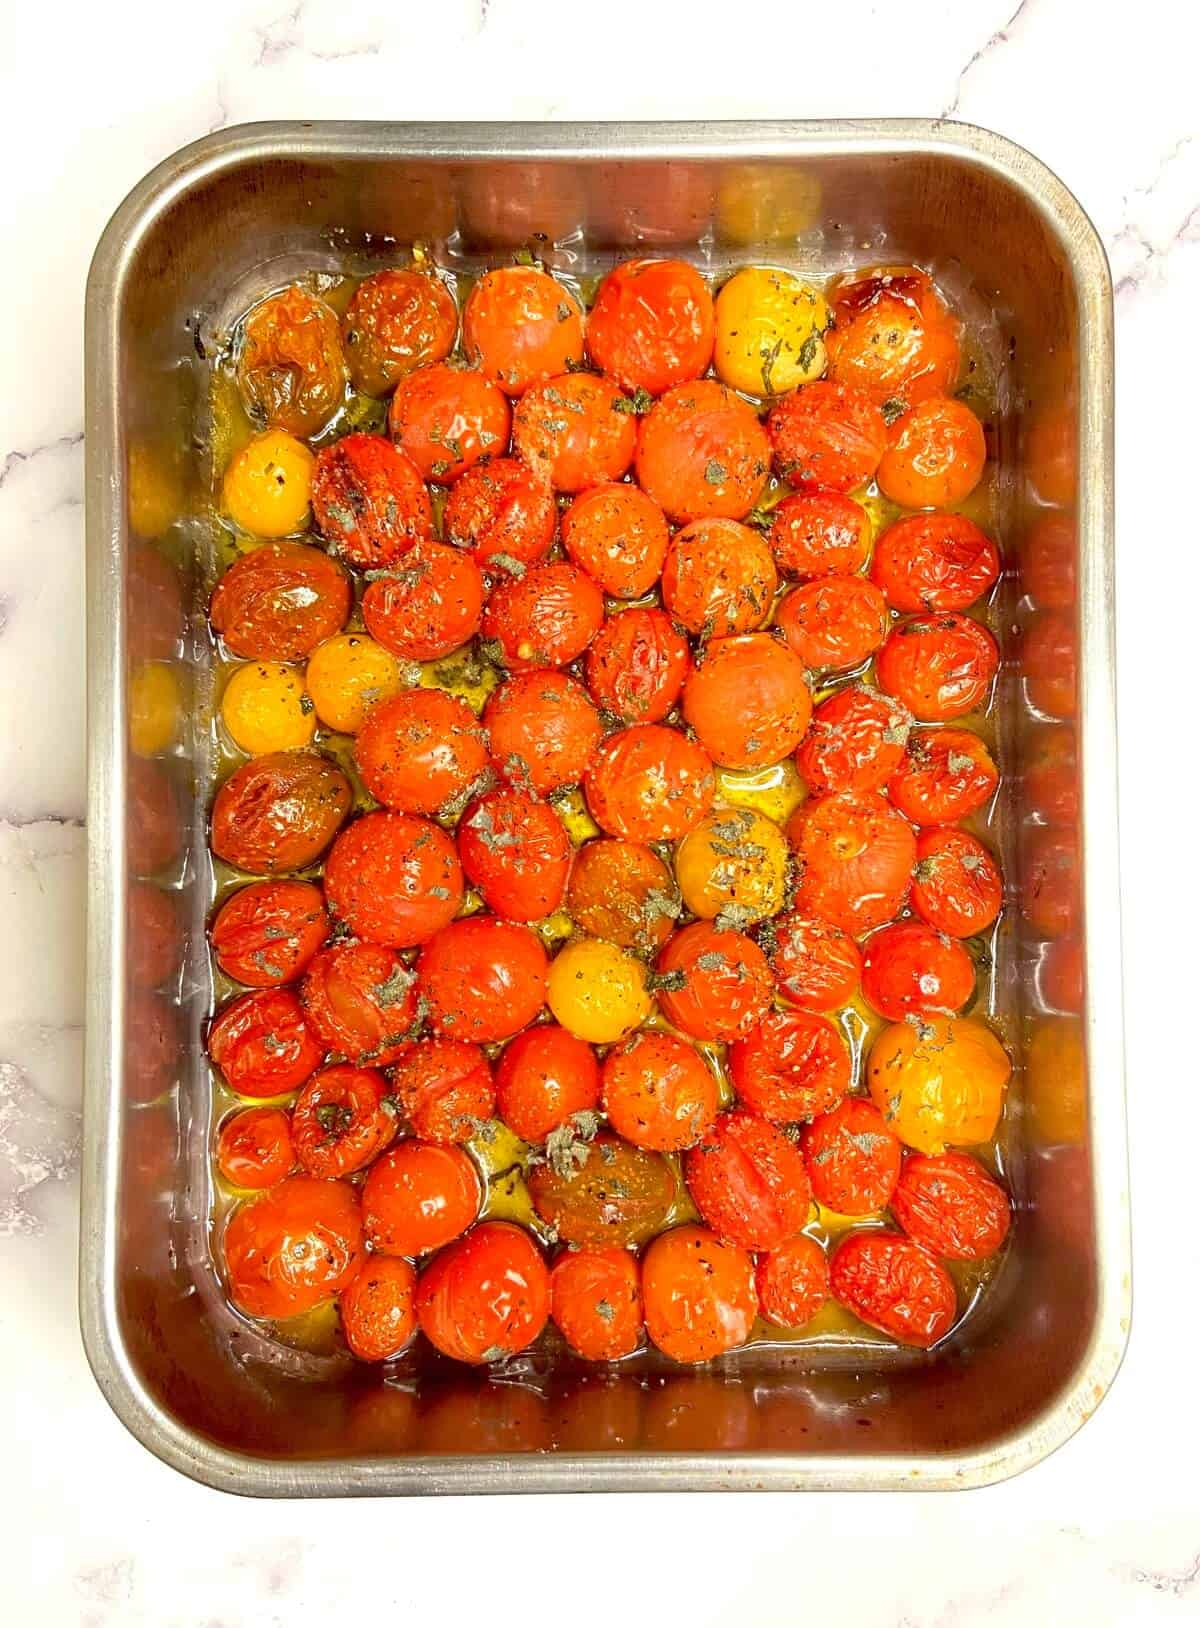 Roasted Tomato and White Bean Stew (Photo by Erich Boenzli)